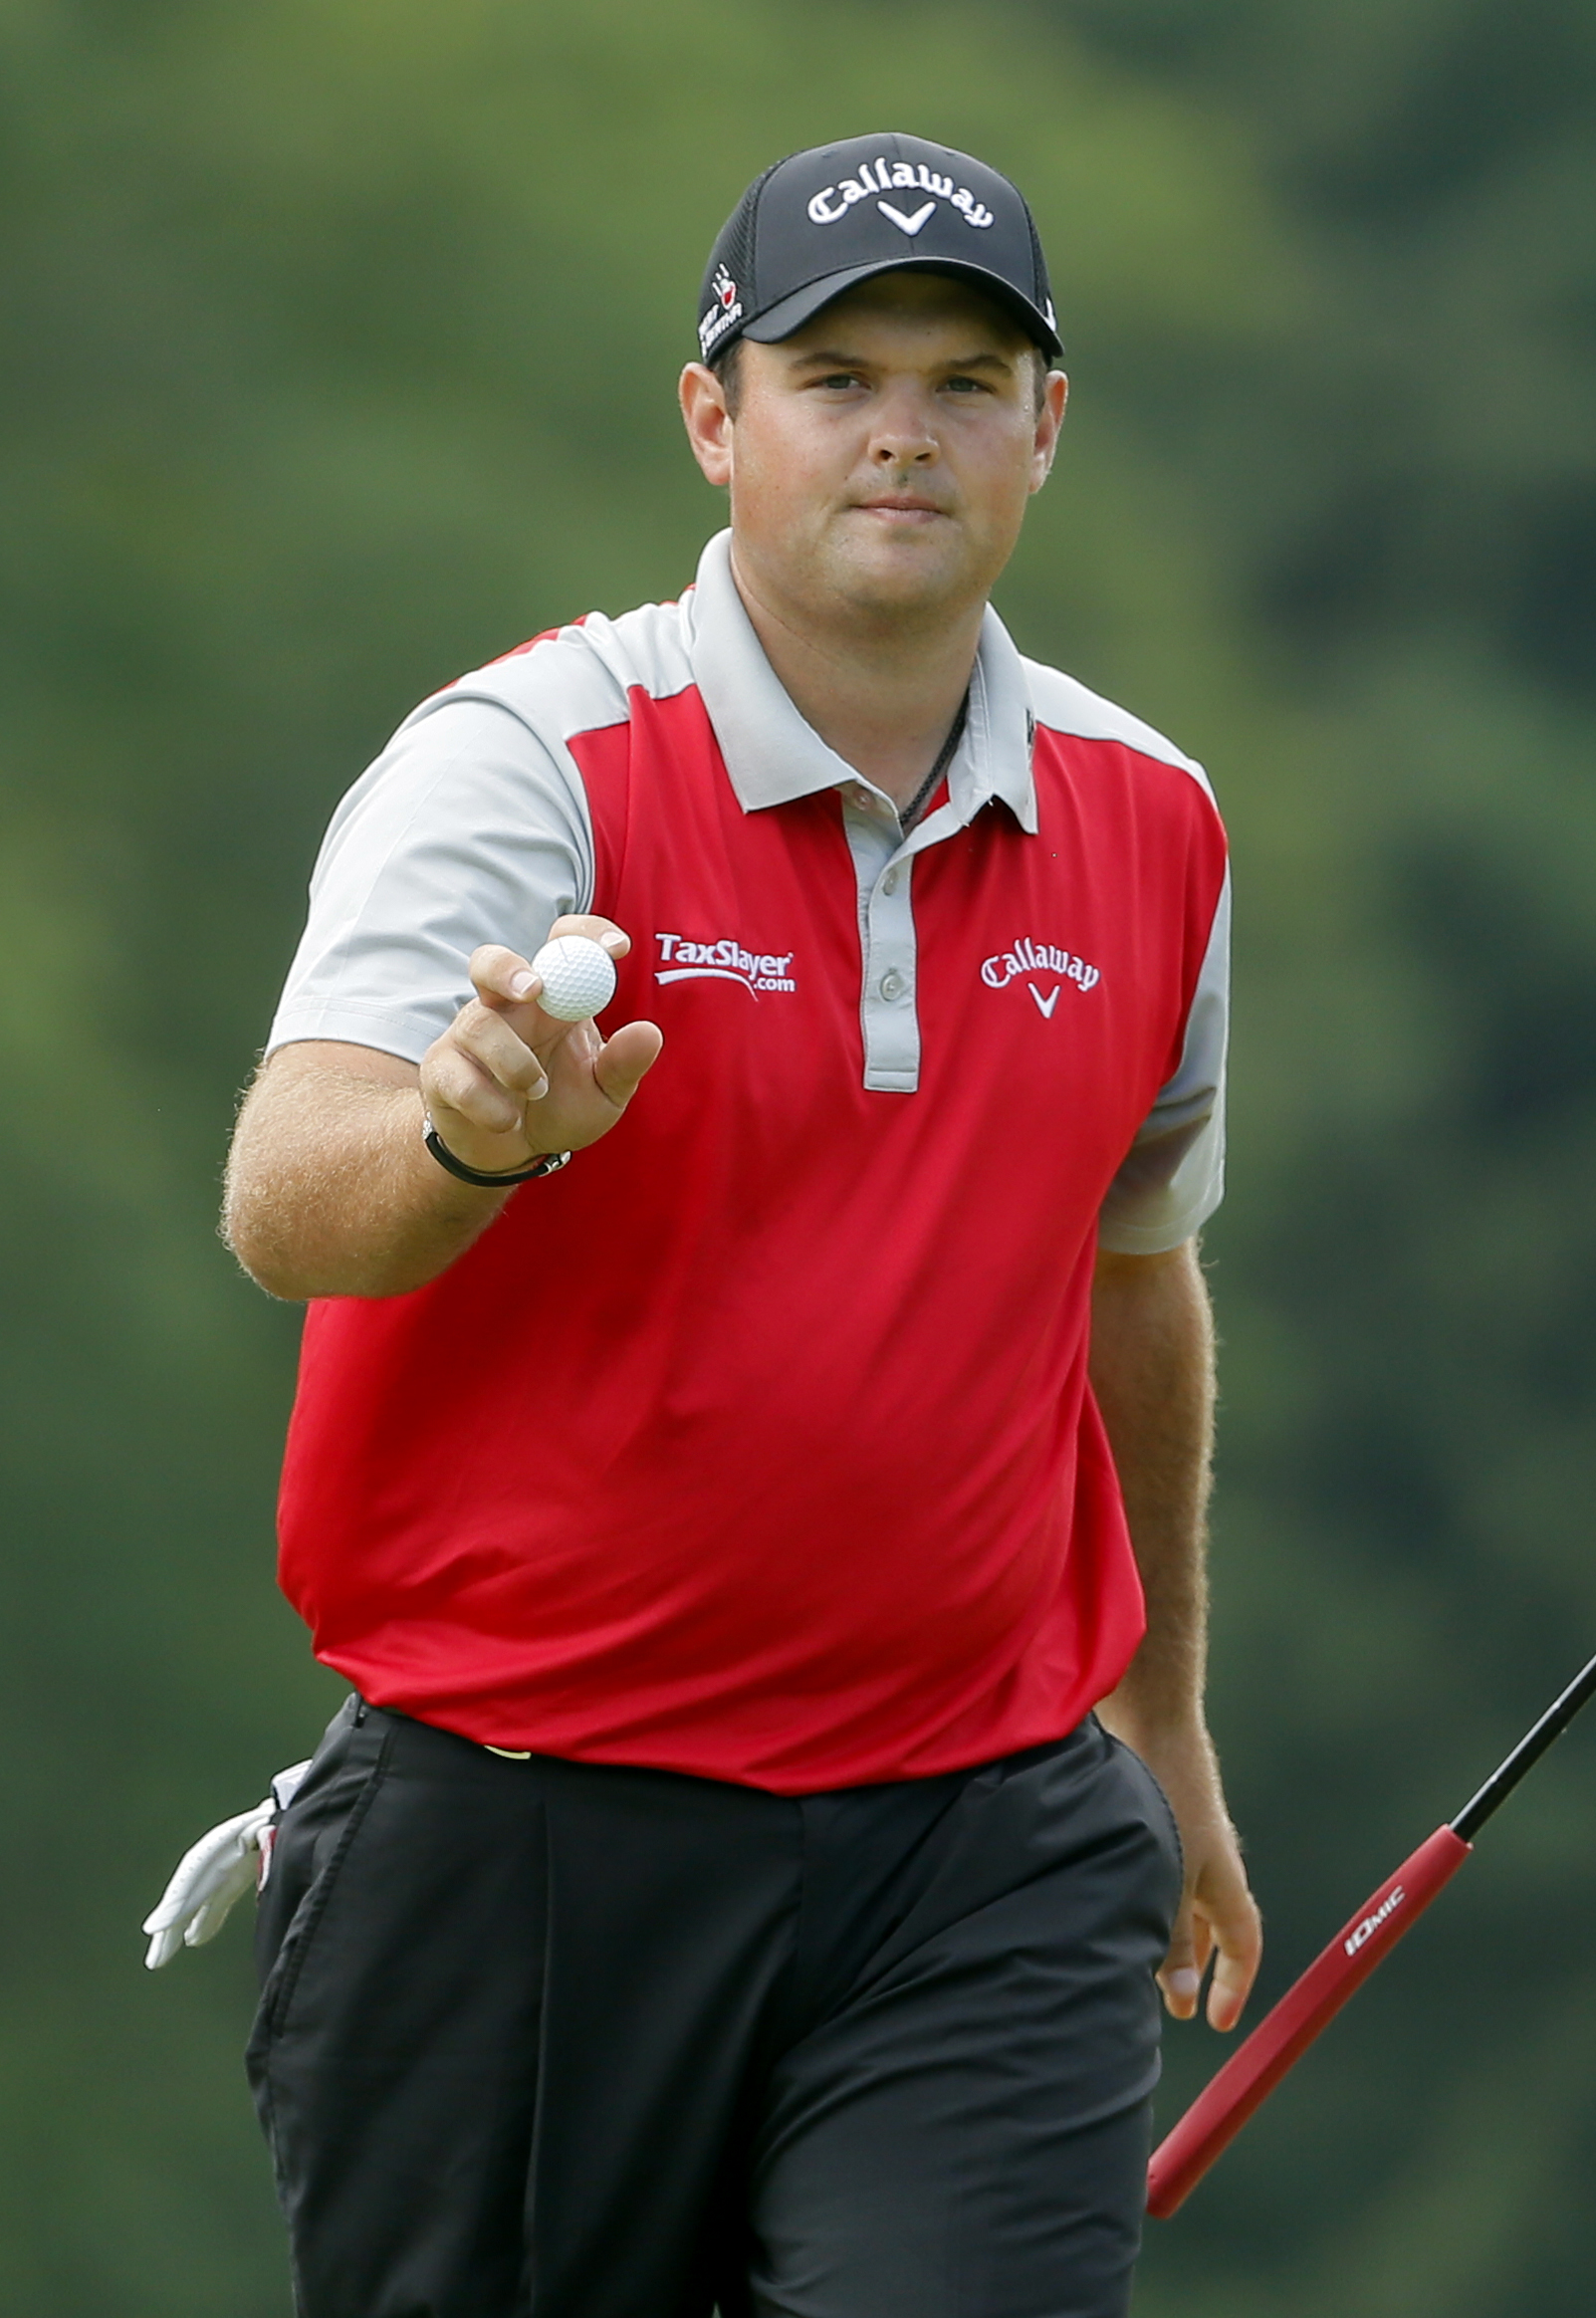 Patrick Reed waves to the crowd after making a putt on the 18th hole during the second round of the PGA Championship golf tournament at Baltusrol Golf Club in Springfield, N.J., Friday, July 29, 2016. (AP Photo/Tony Gutierrez)